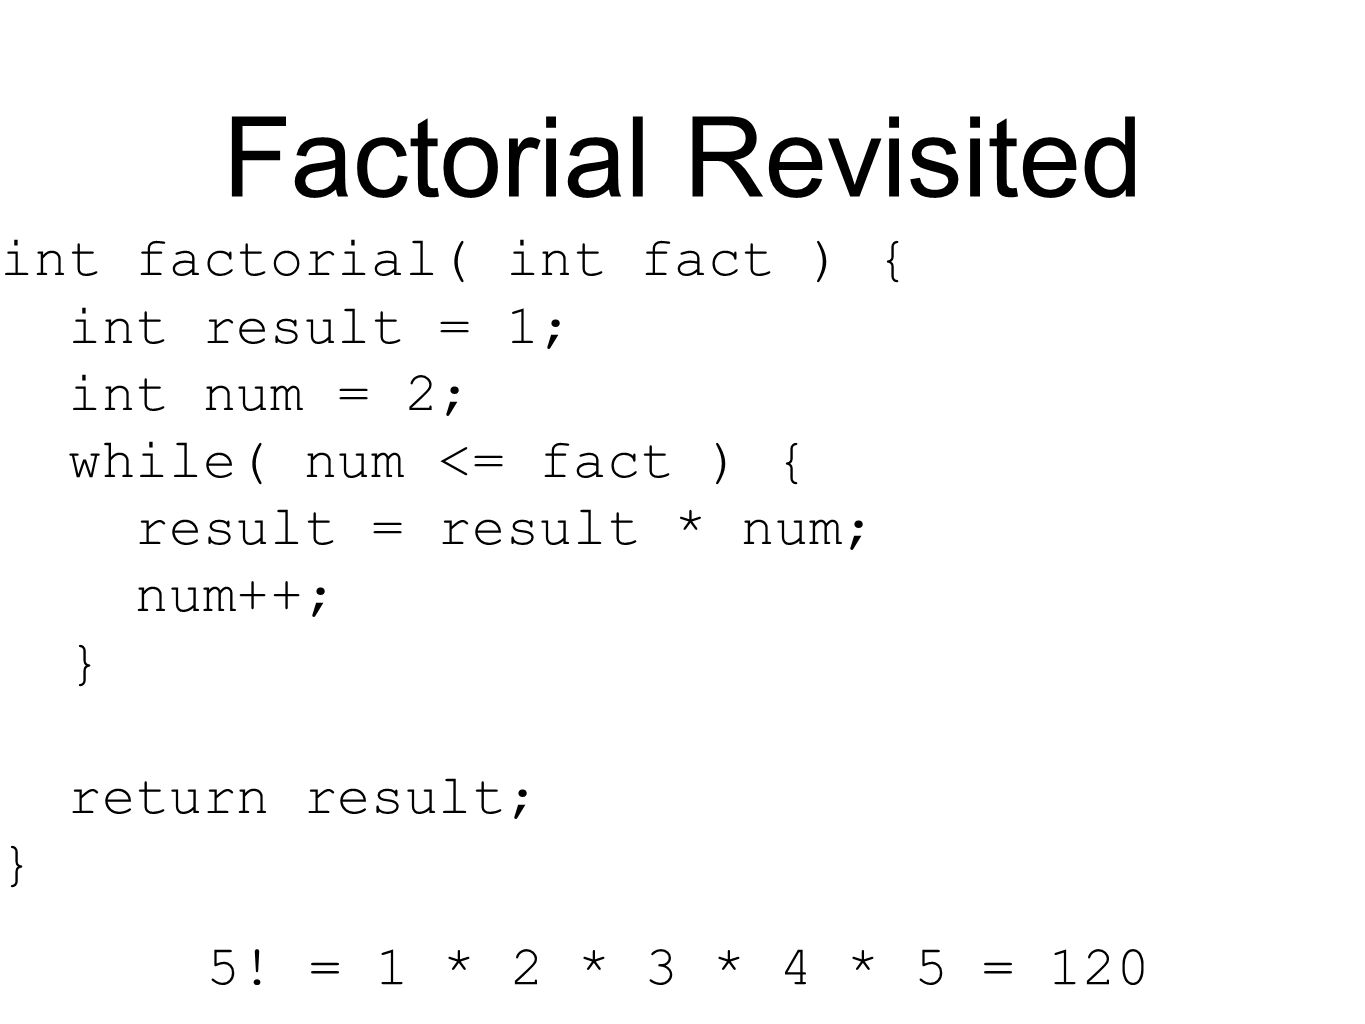 Factorial Revisited int factorial( int fact ) { int result = 1; int num = 2; while( num <= fact ) { result = result * num; num++; } return result; } 5.